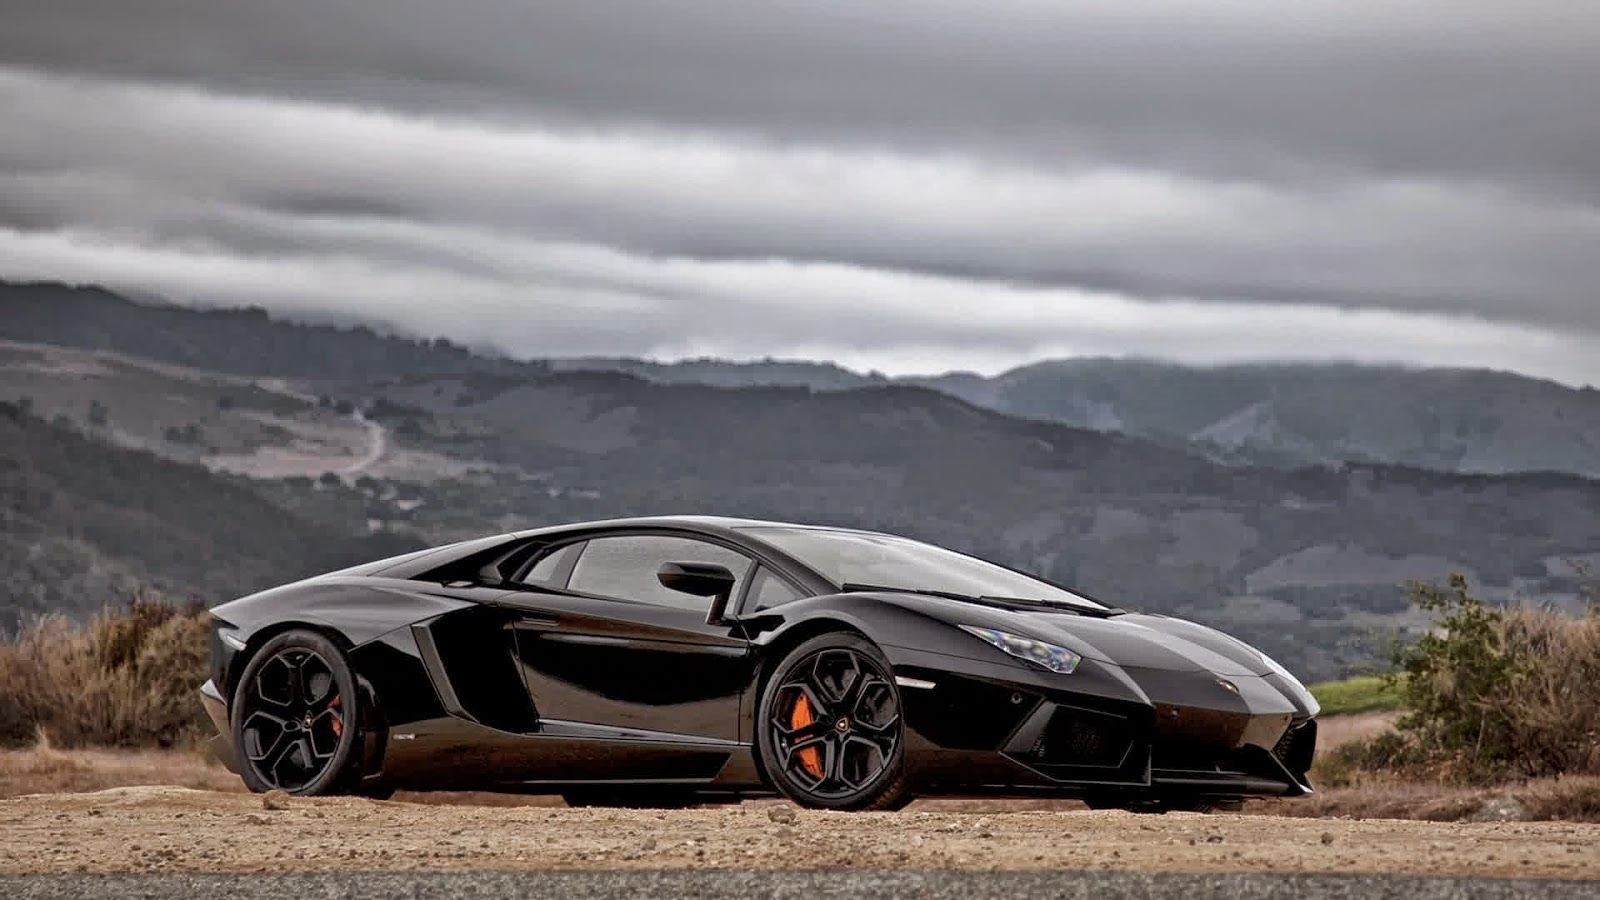 lamborghini-aventador-black-1080p-hd-wallpaper